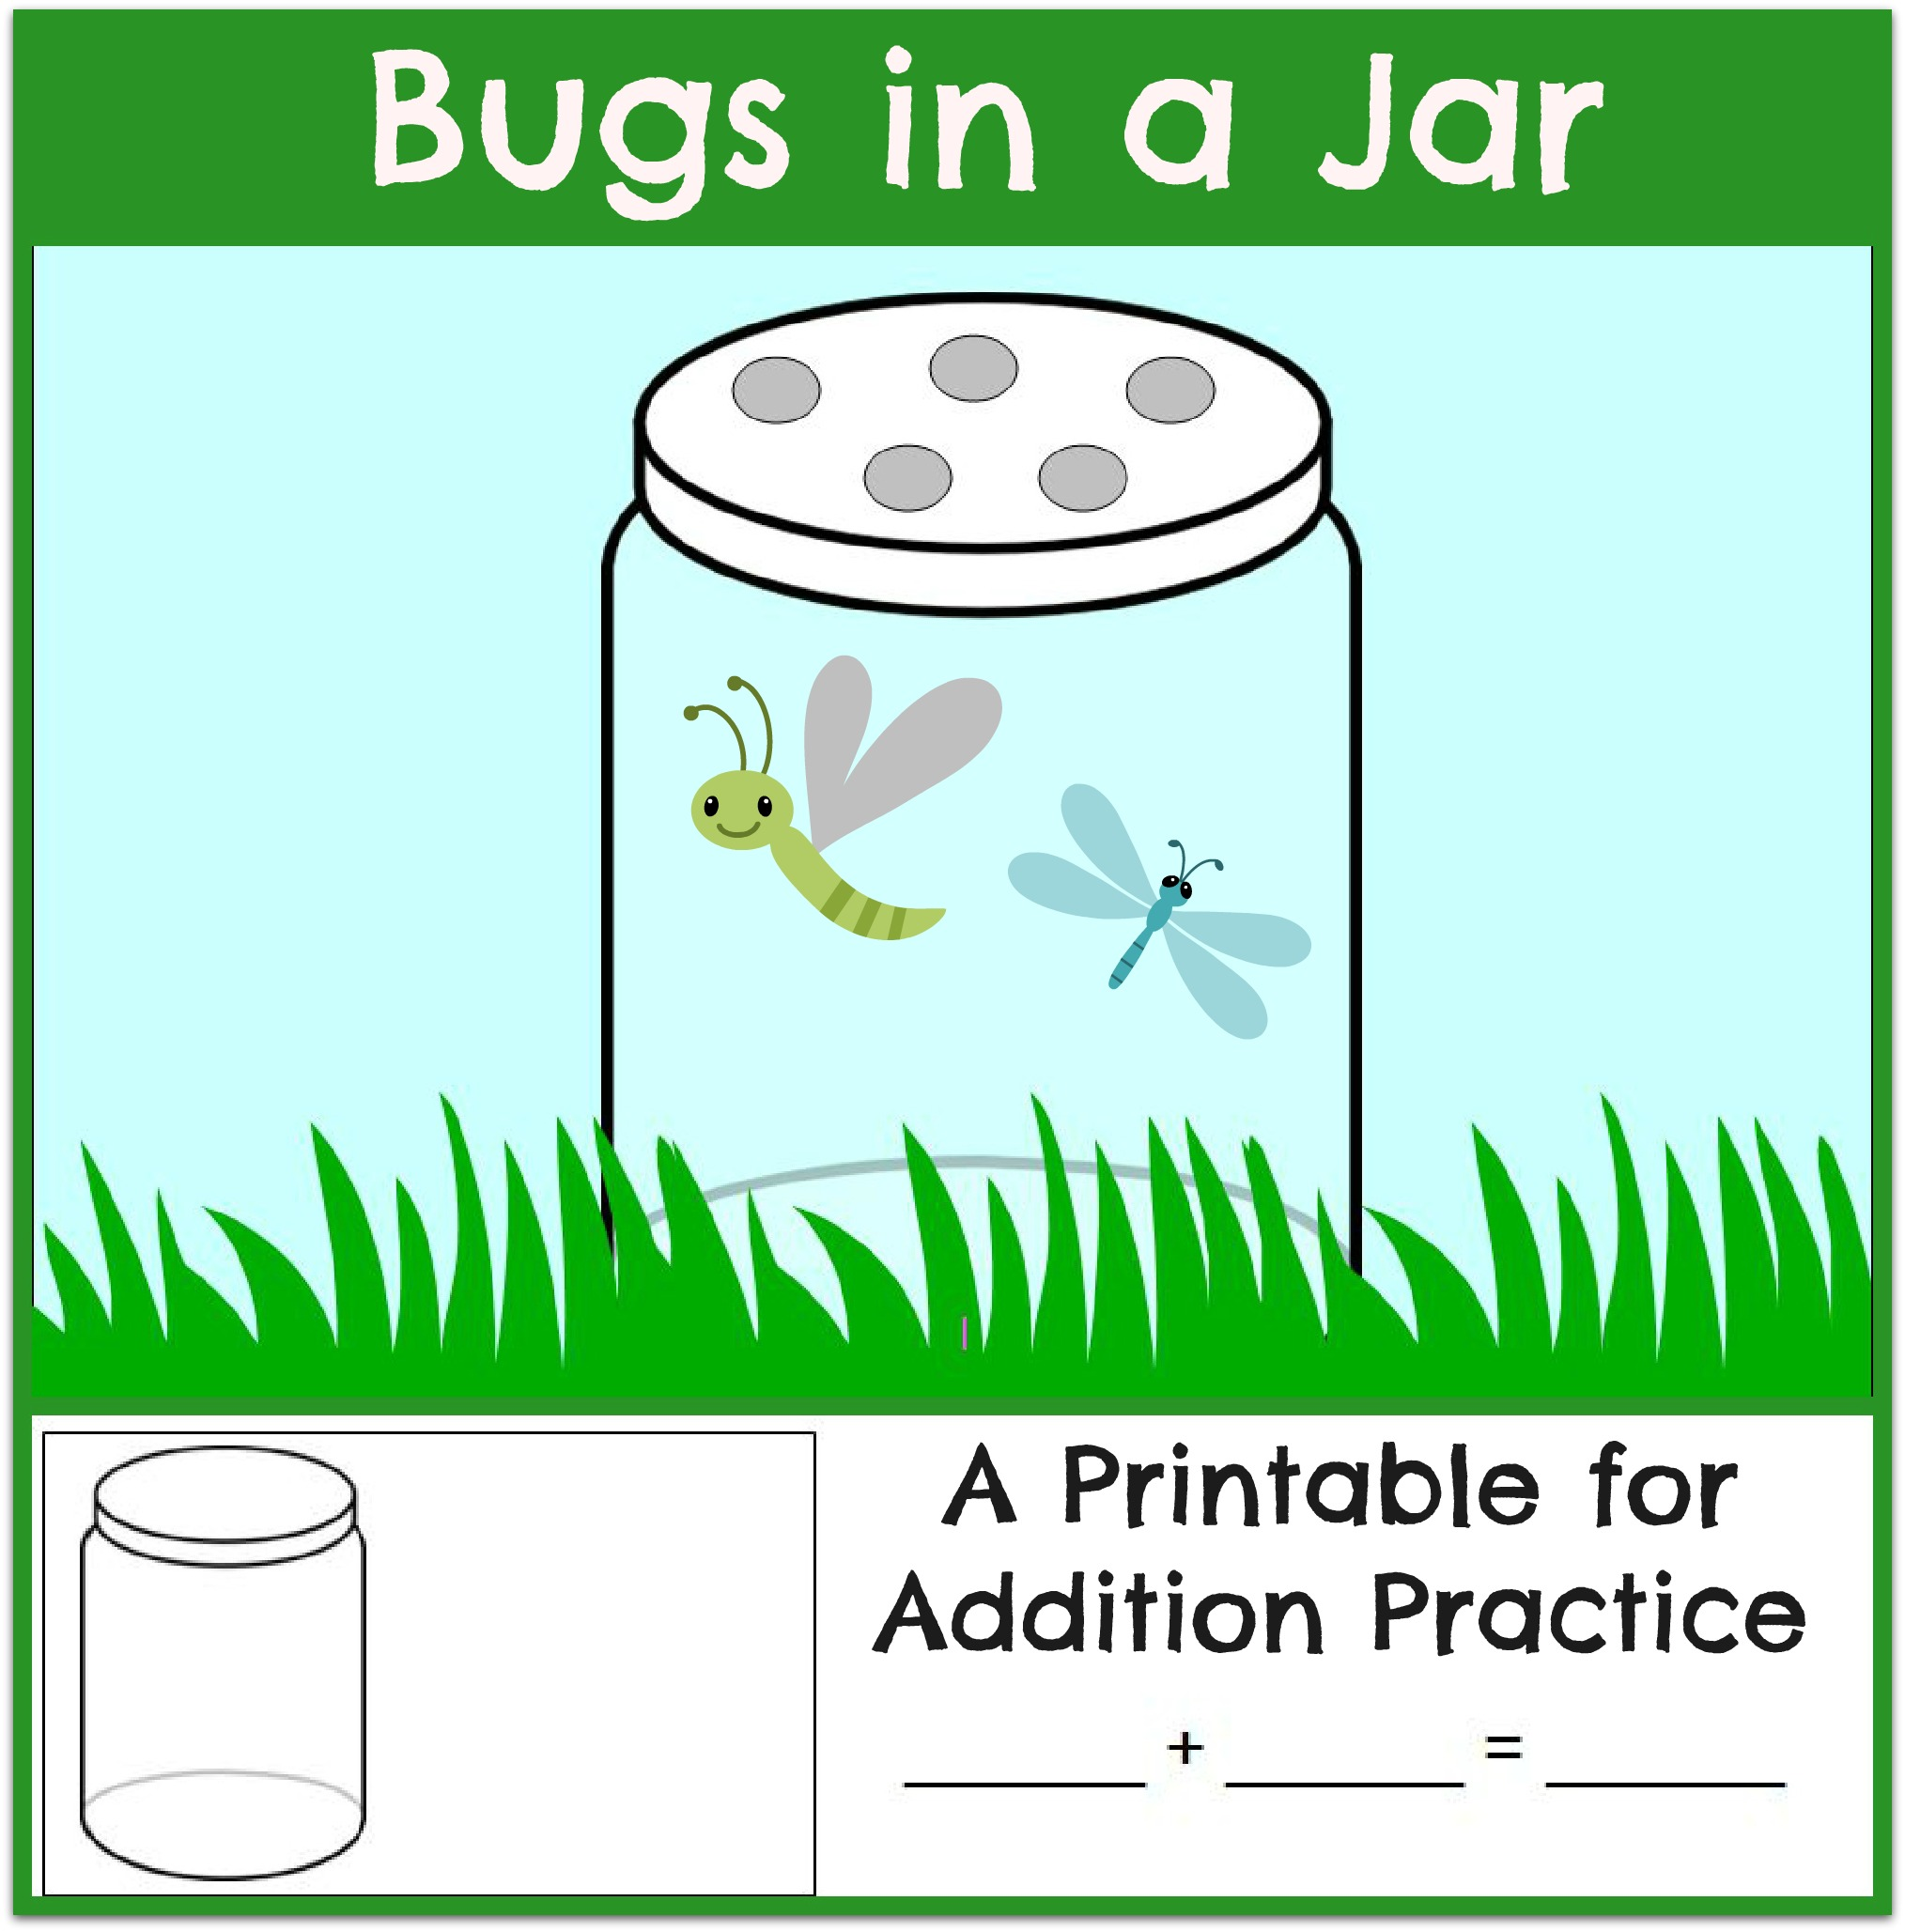 Bug Jar Math Printables Activities For Kids